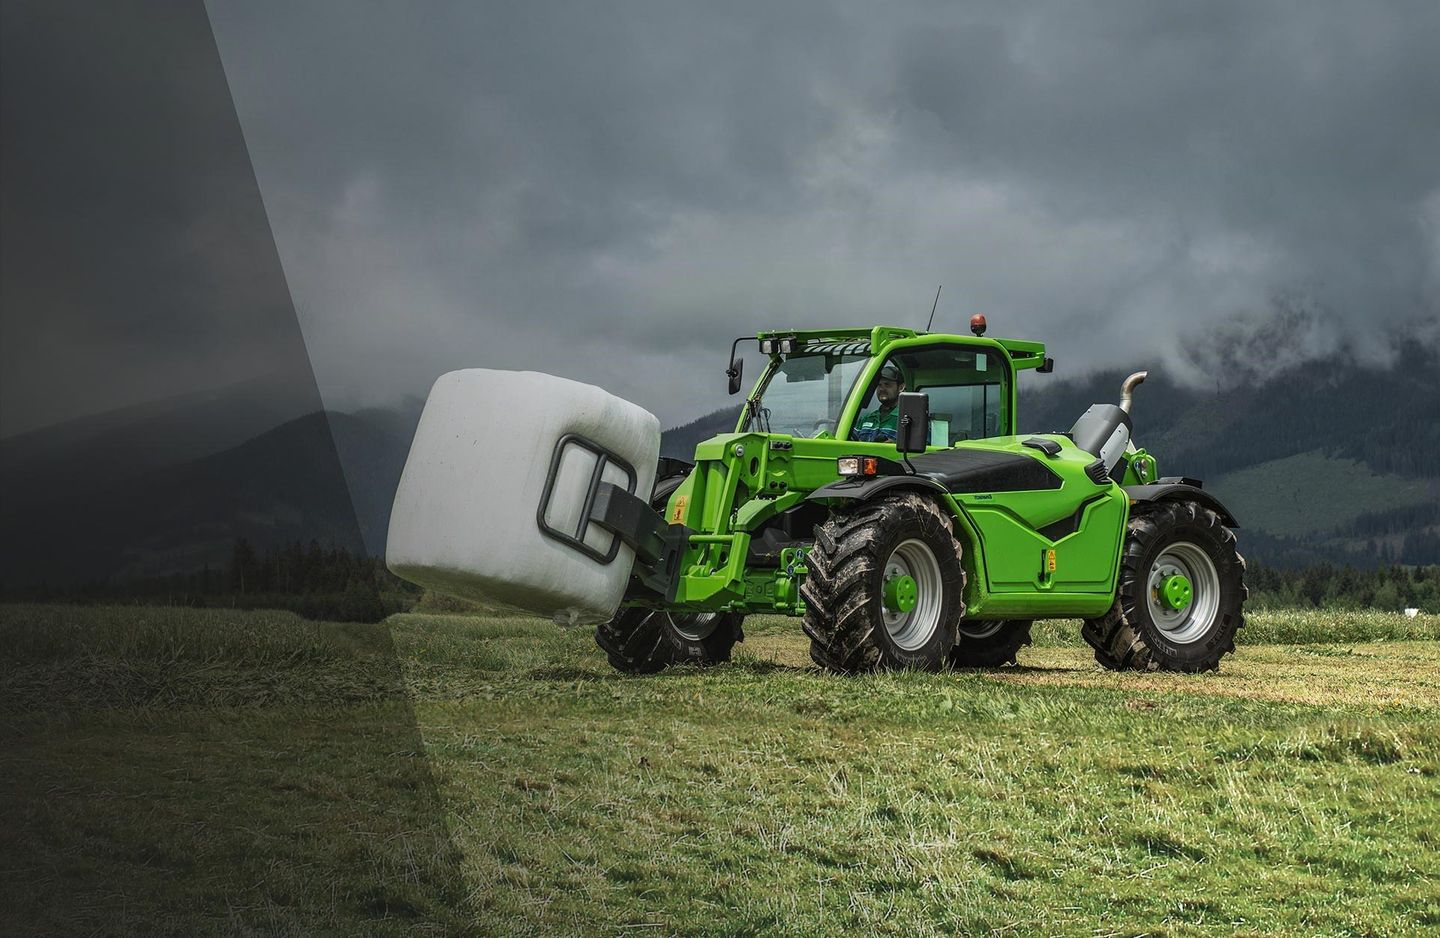 merlo-telehandler-for-sale-or-available-for-rent